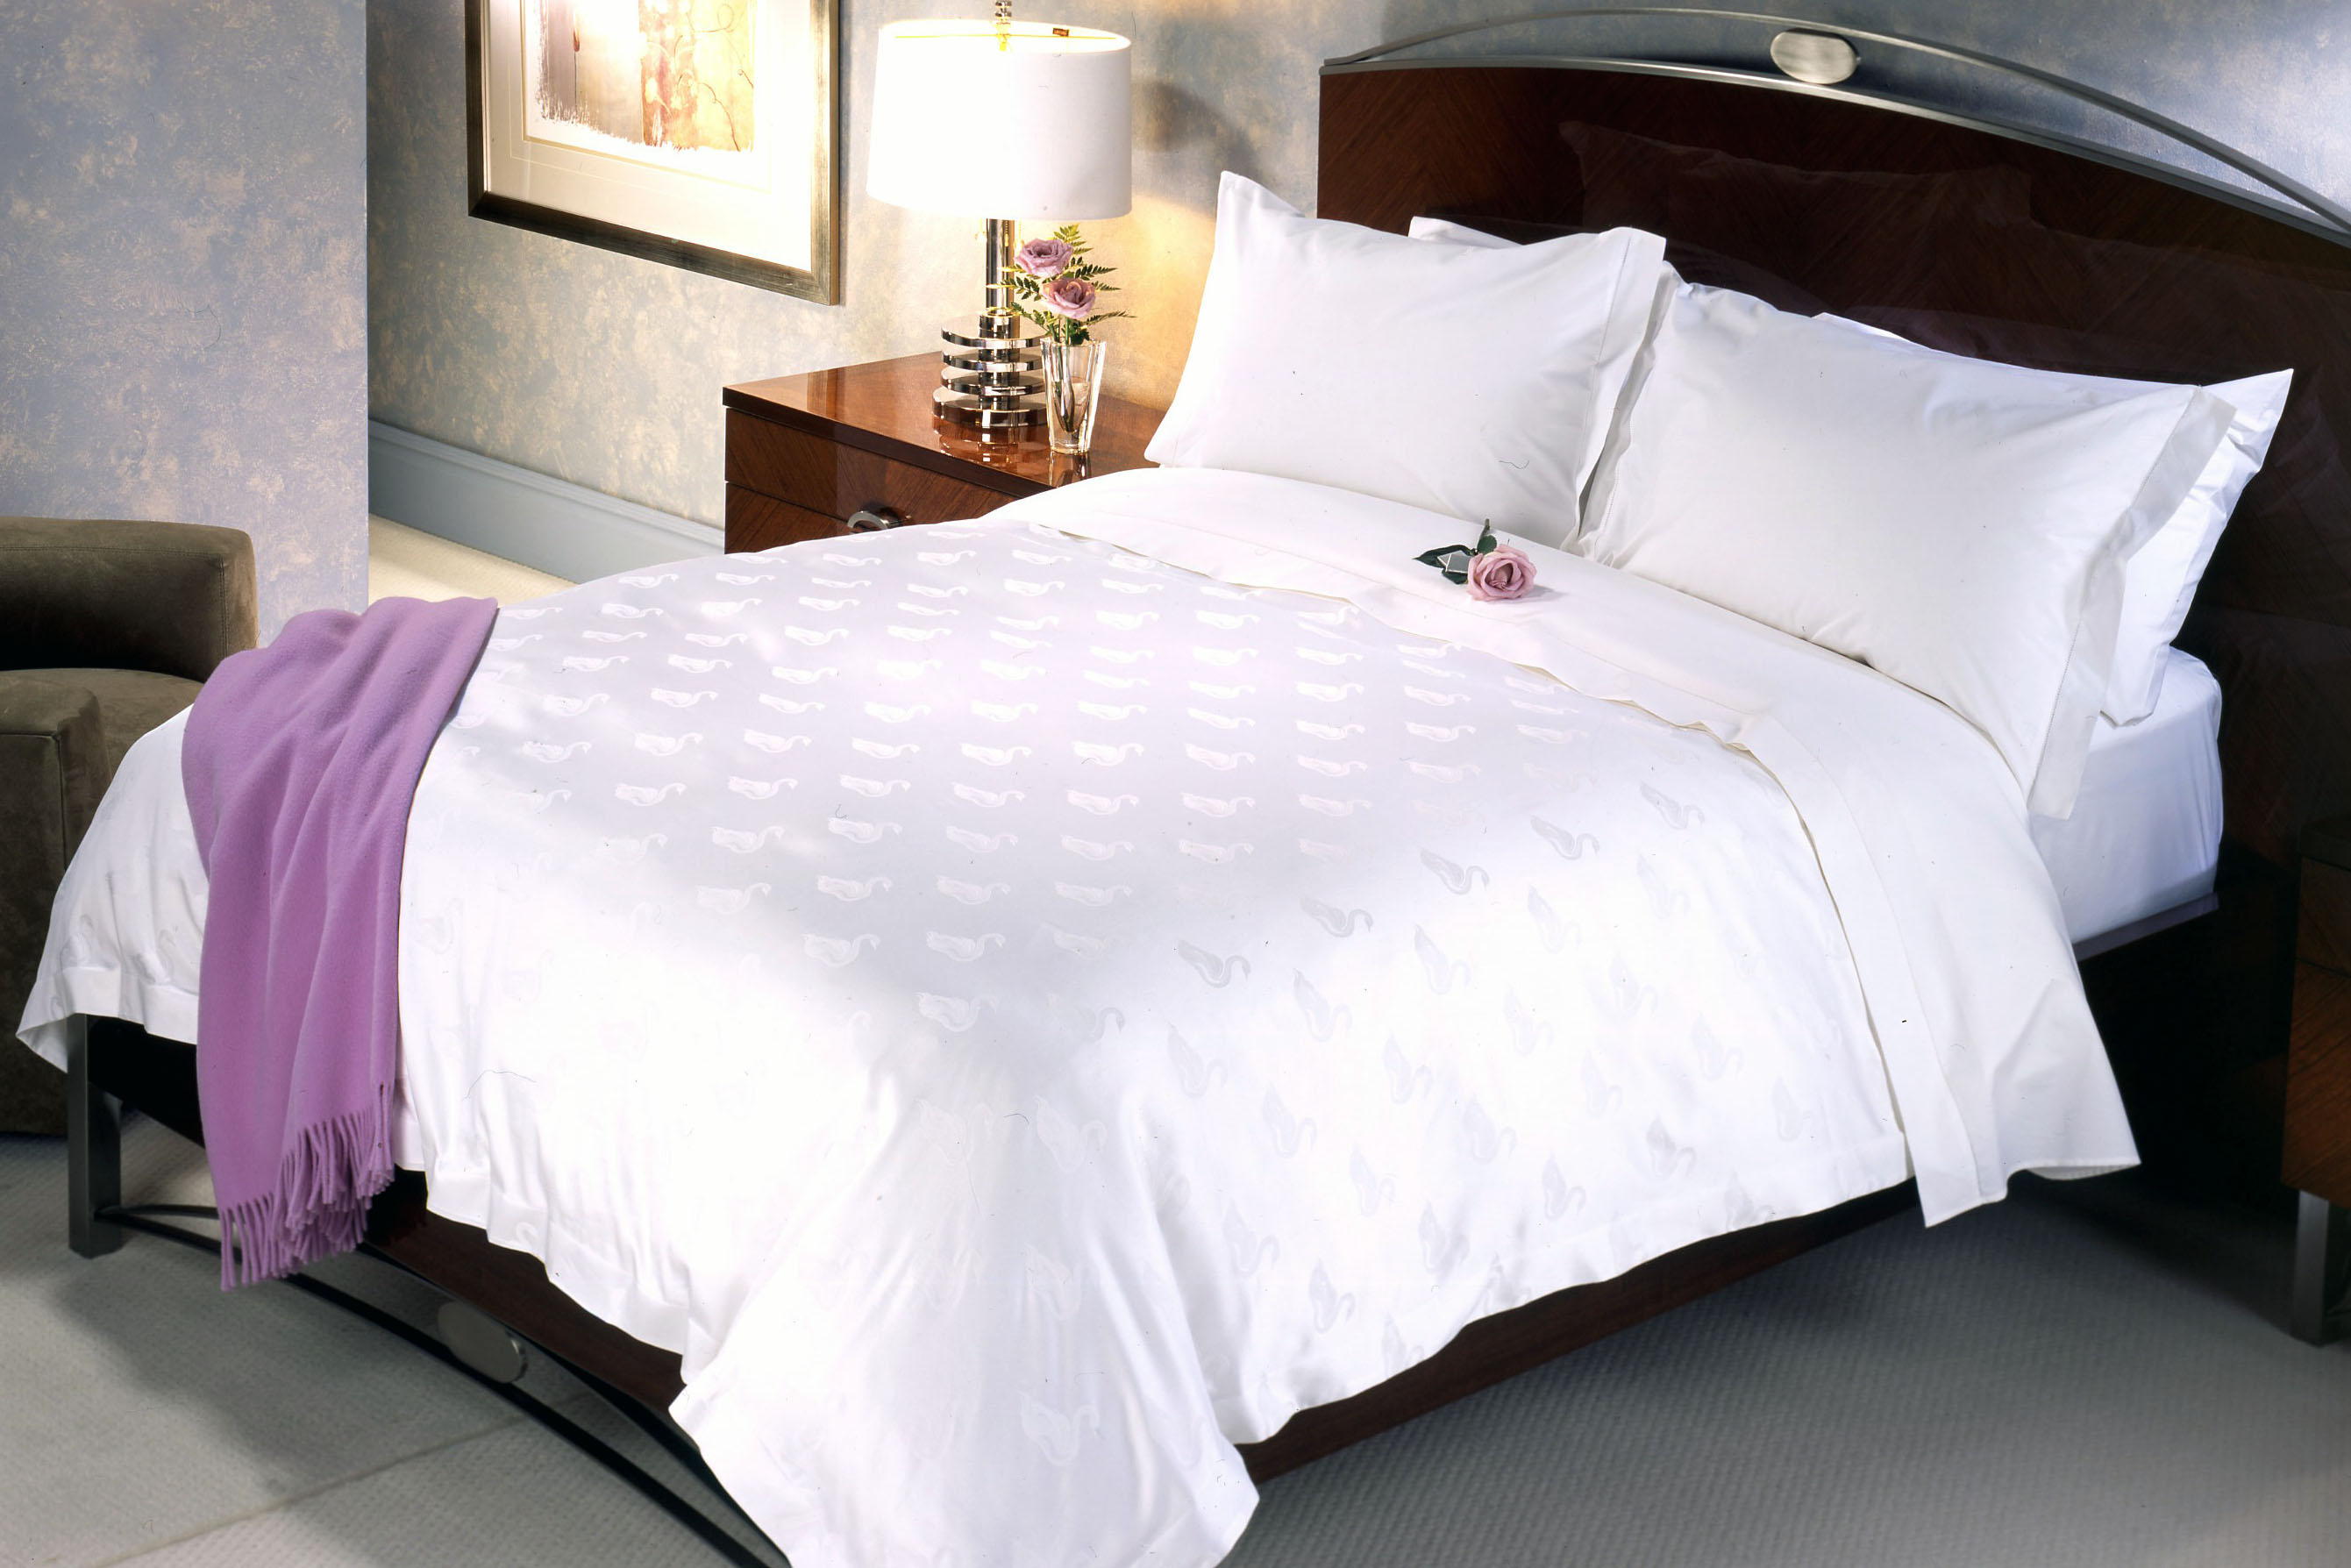 Fabulous White Linen Bed Sheets 2681 x 1788 · 389 kB · jpeg